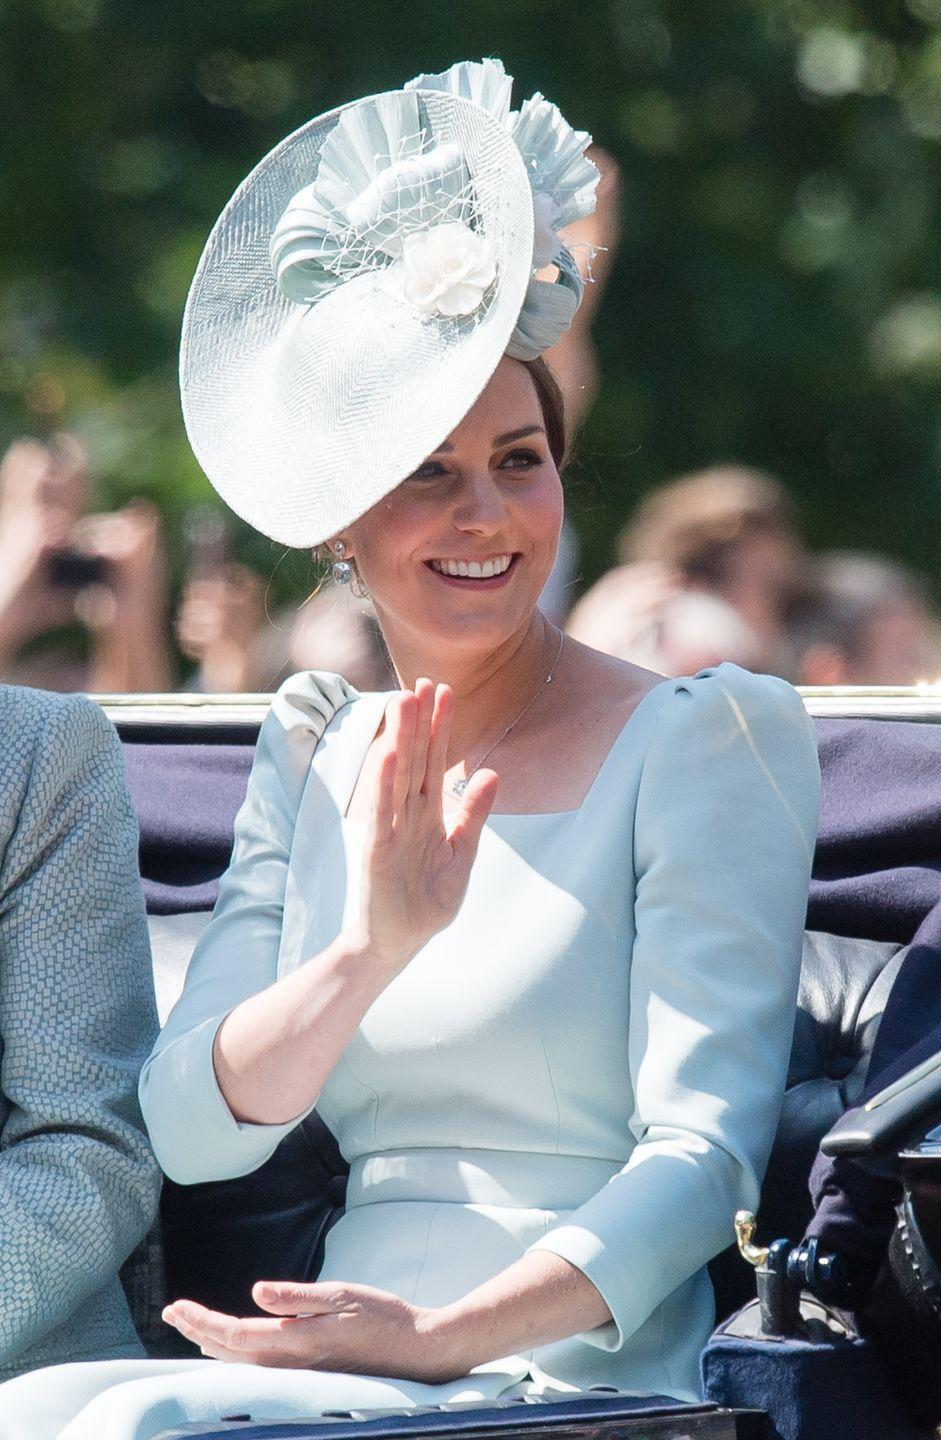 "<p>The Duchess looked lovely <a href=""https://www.townandcountrymag.com/society/tradition/a21240655/kate-middleton-dress-trooping-the-colour-2018/"" rel=""nofollow noopener"" target=""_blank"" data-ylk=""slk:in a pale blue dress by Alexander McQueen"" class=""link rapid-noclick-resp"">in a pale blue dress by Alexander McQueen</a> while attending the Queen's Trooping the Colour parade in London. She also wore a hat by Juliette Botterill for the festive occasion. </p>"